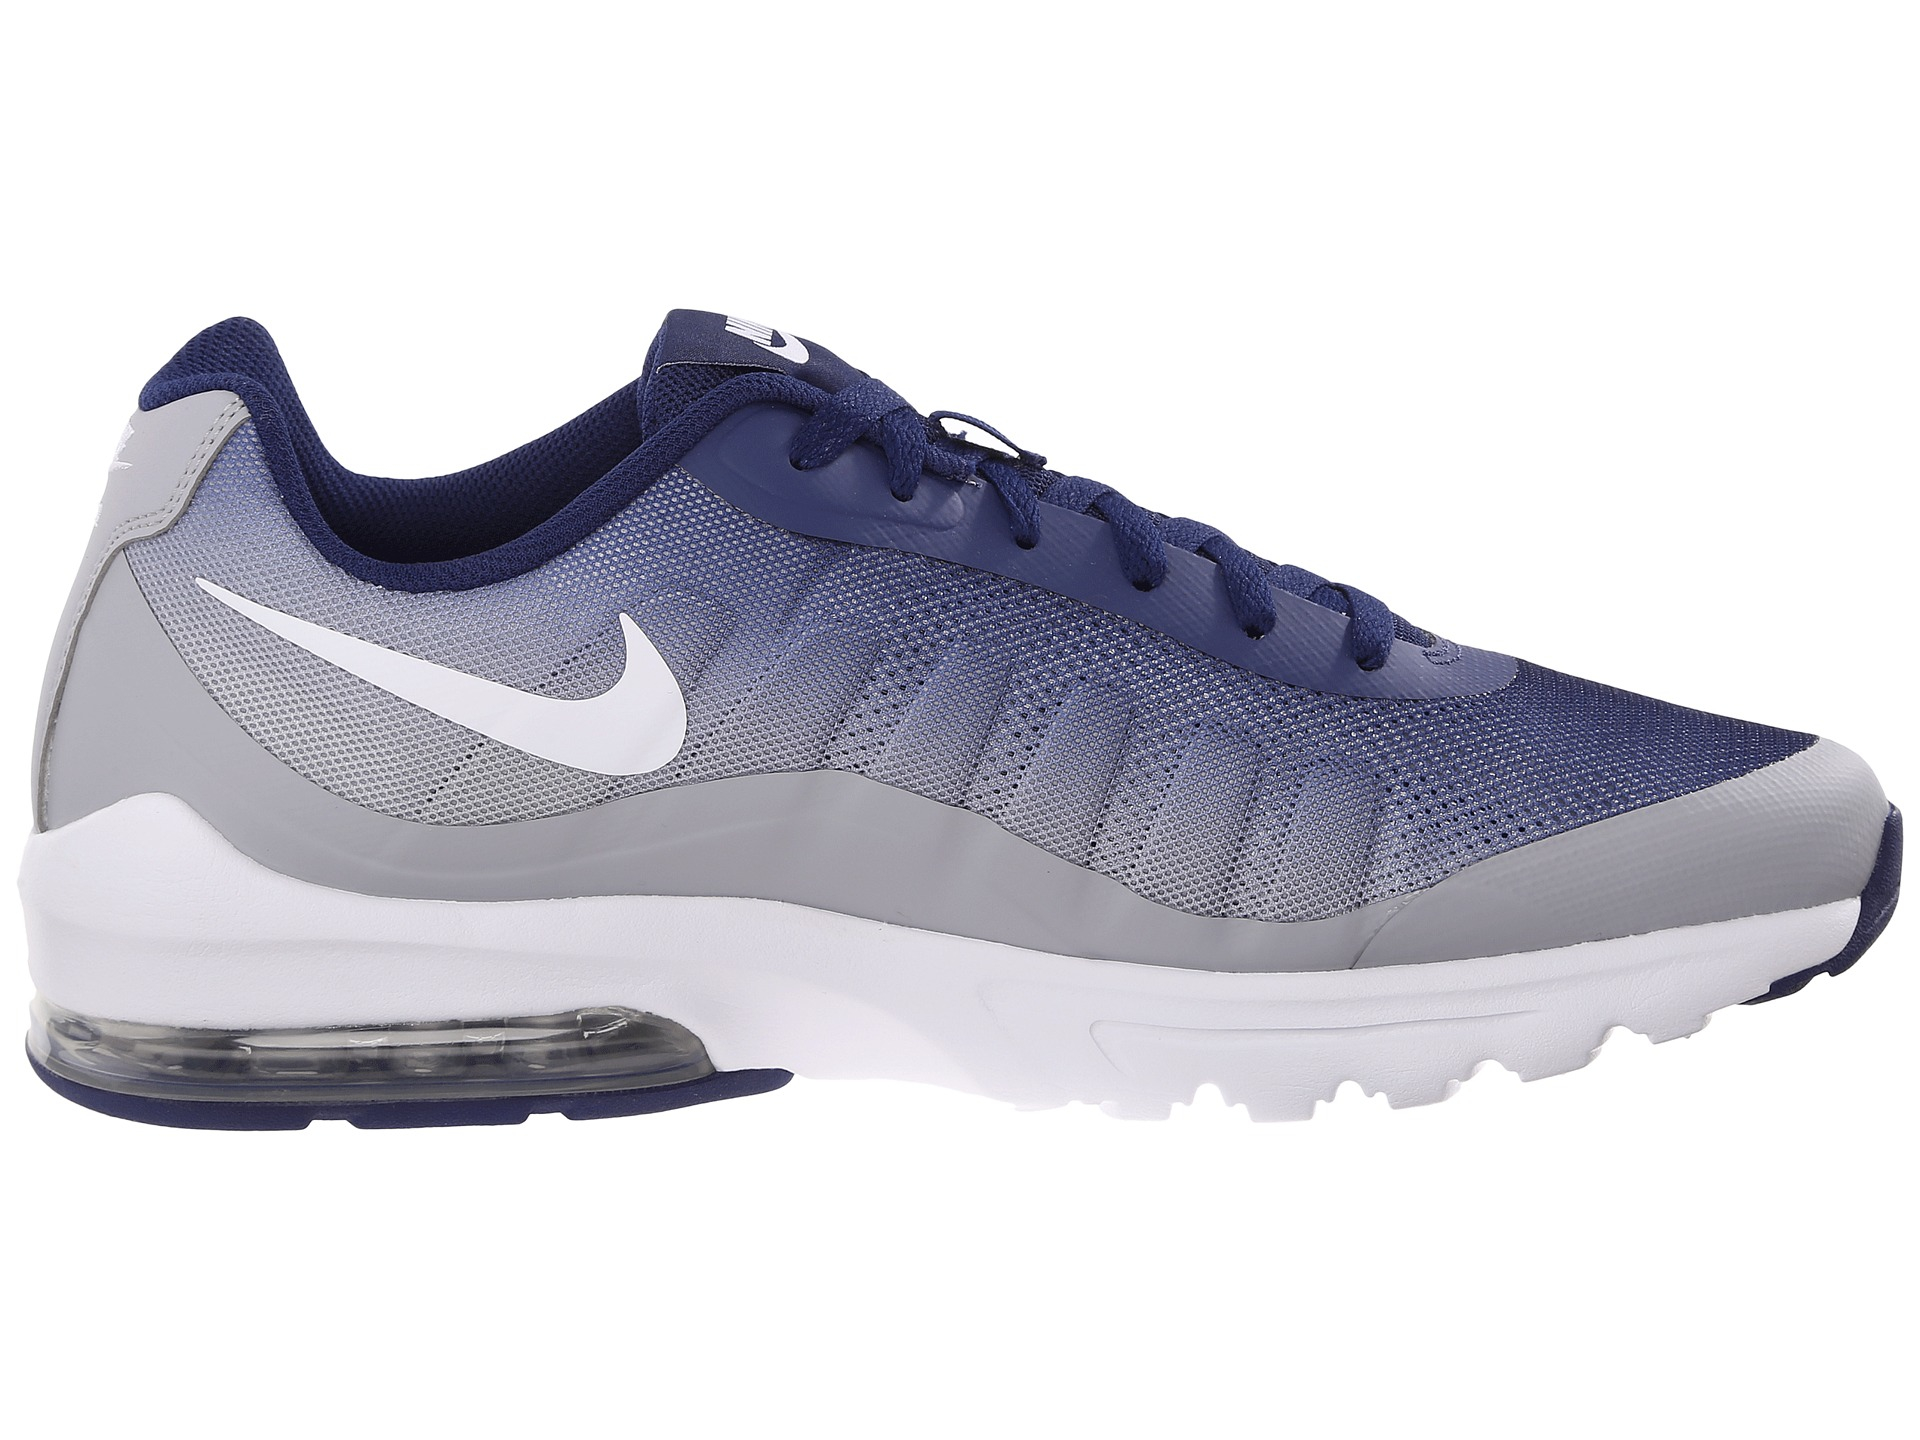 a1770c8db5 ... inexpensive lyst nike air max invigor in blue for men 0a974 397d6